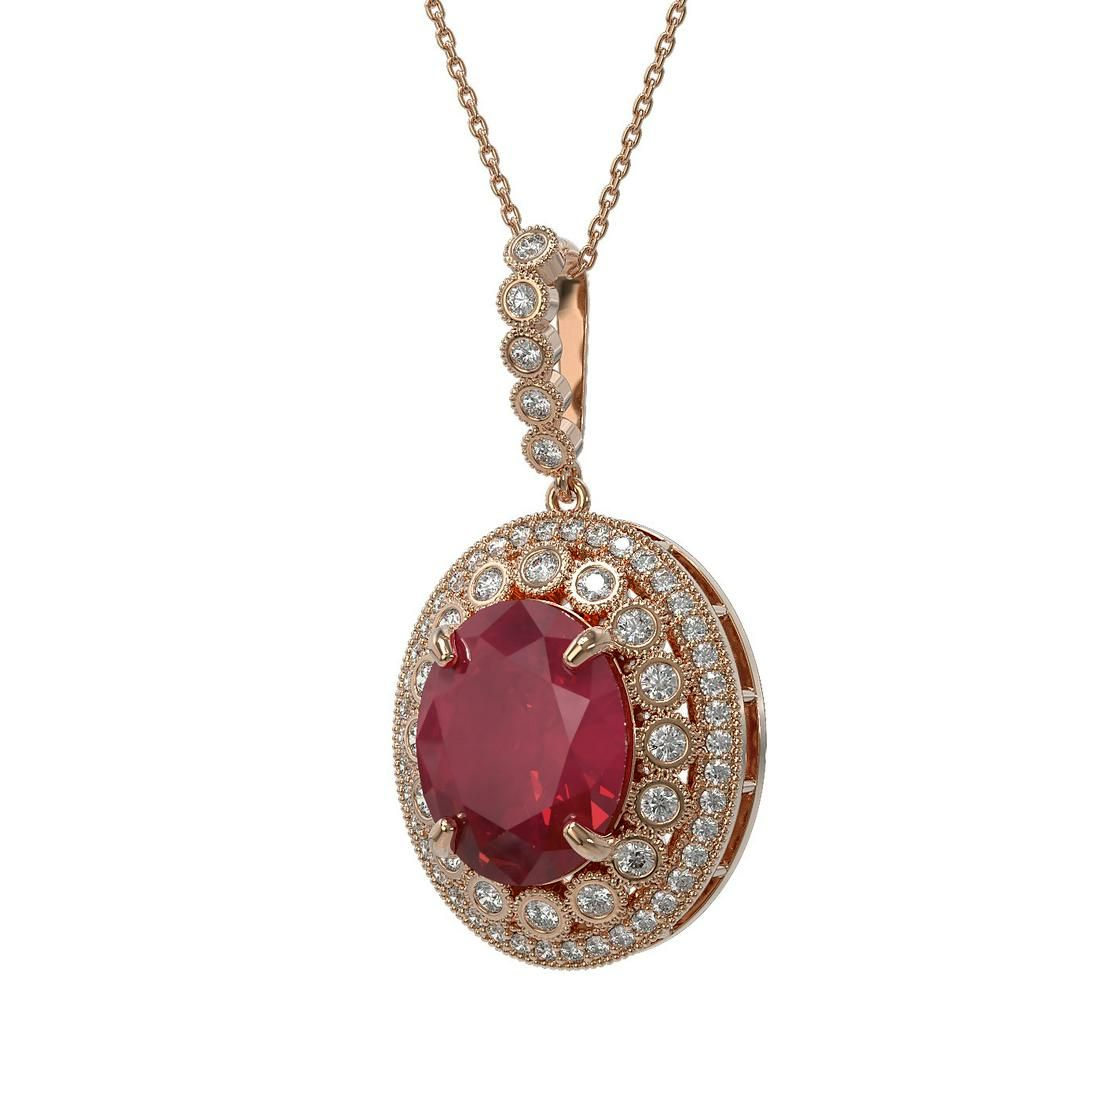 13.75 ctw Certified Ruby & Diamond Victorian Necklace